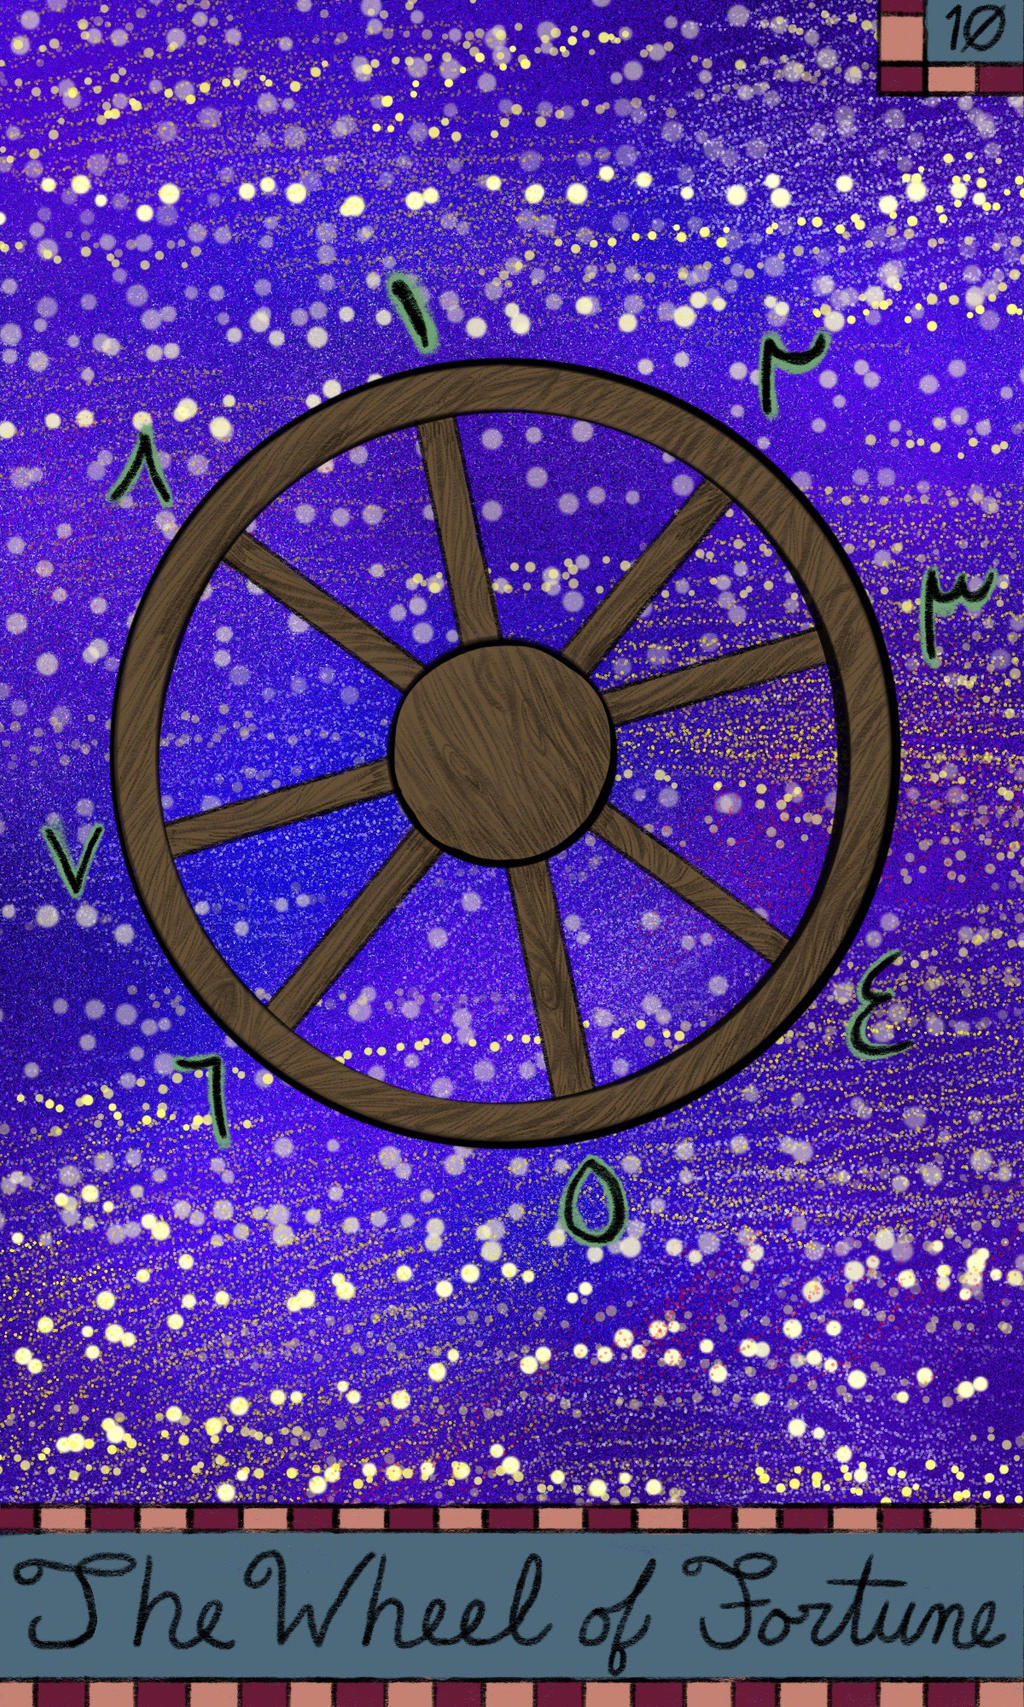 10 The Wheel of Fortune Tarot by Fevley